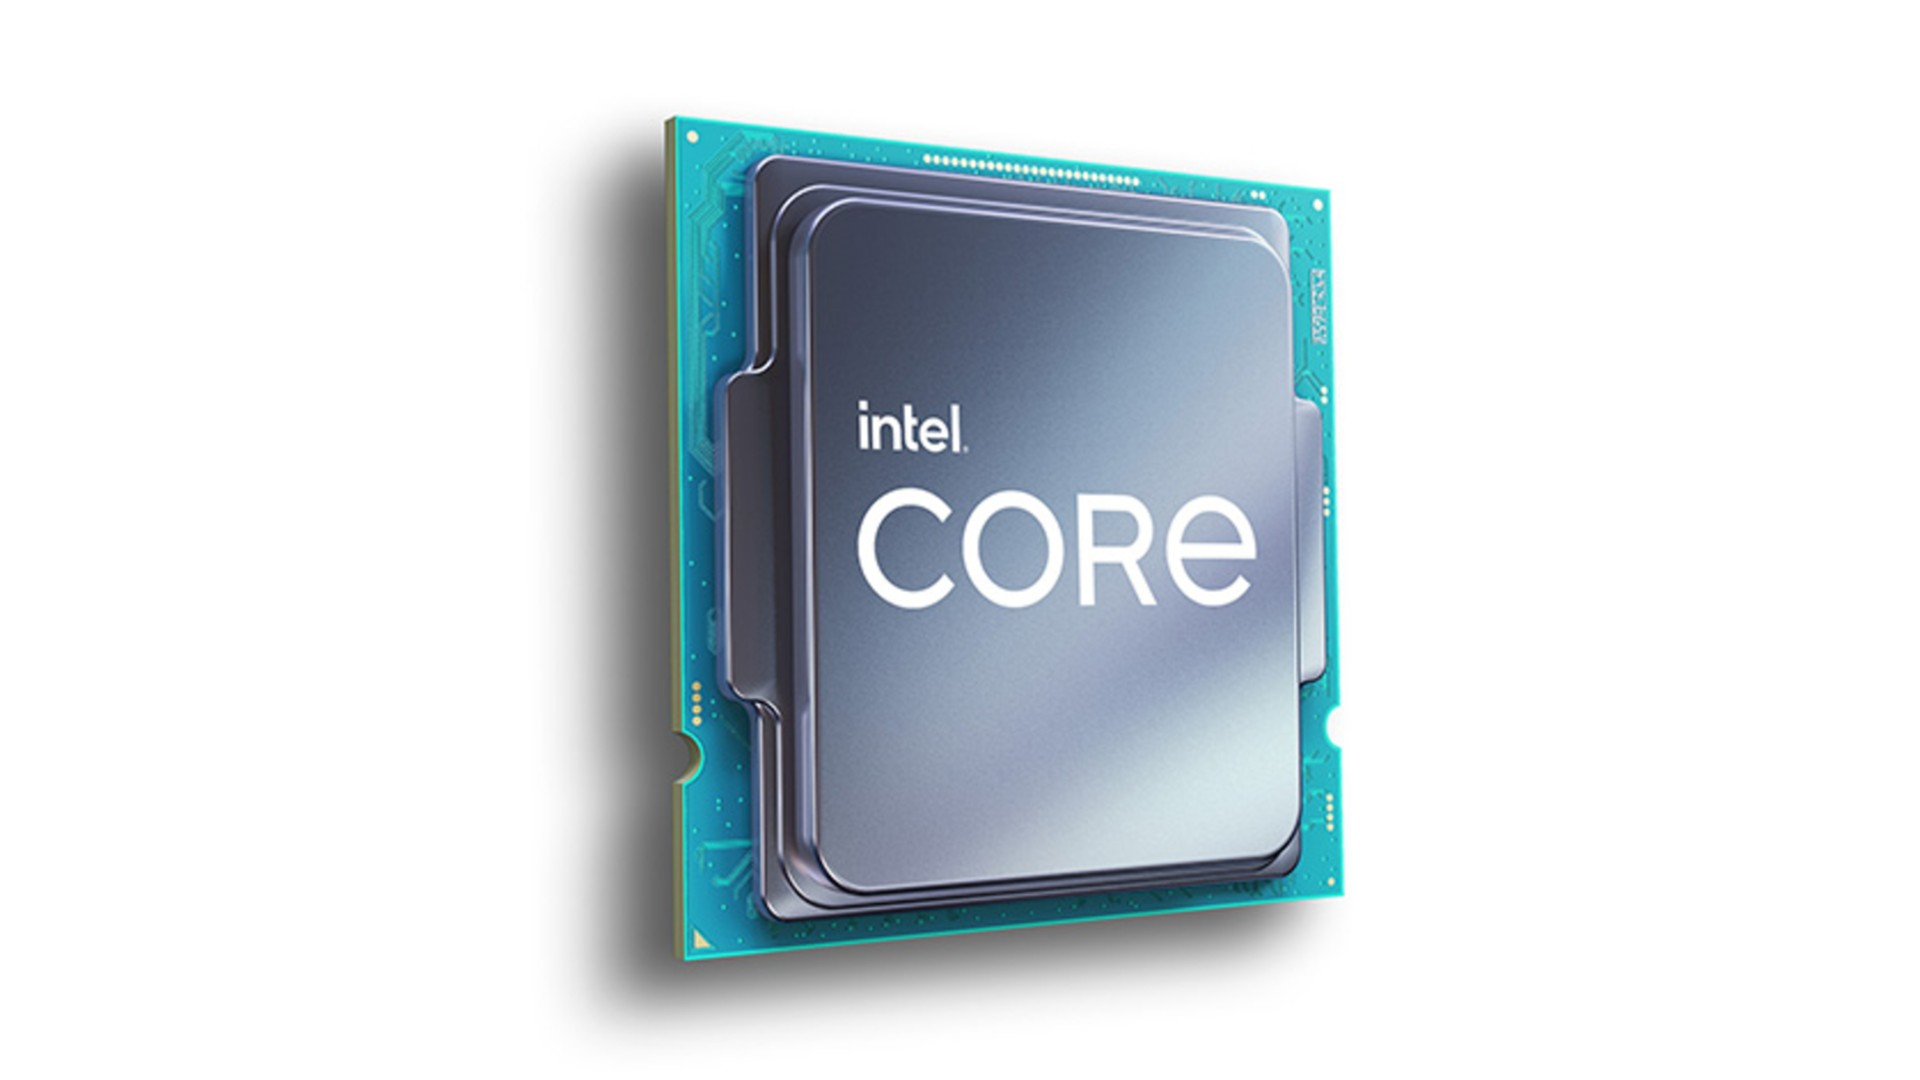 Intel's i7 11700K sold to consumers a month before release